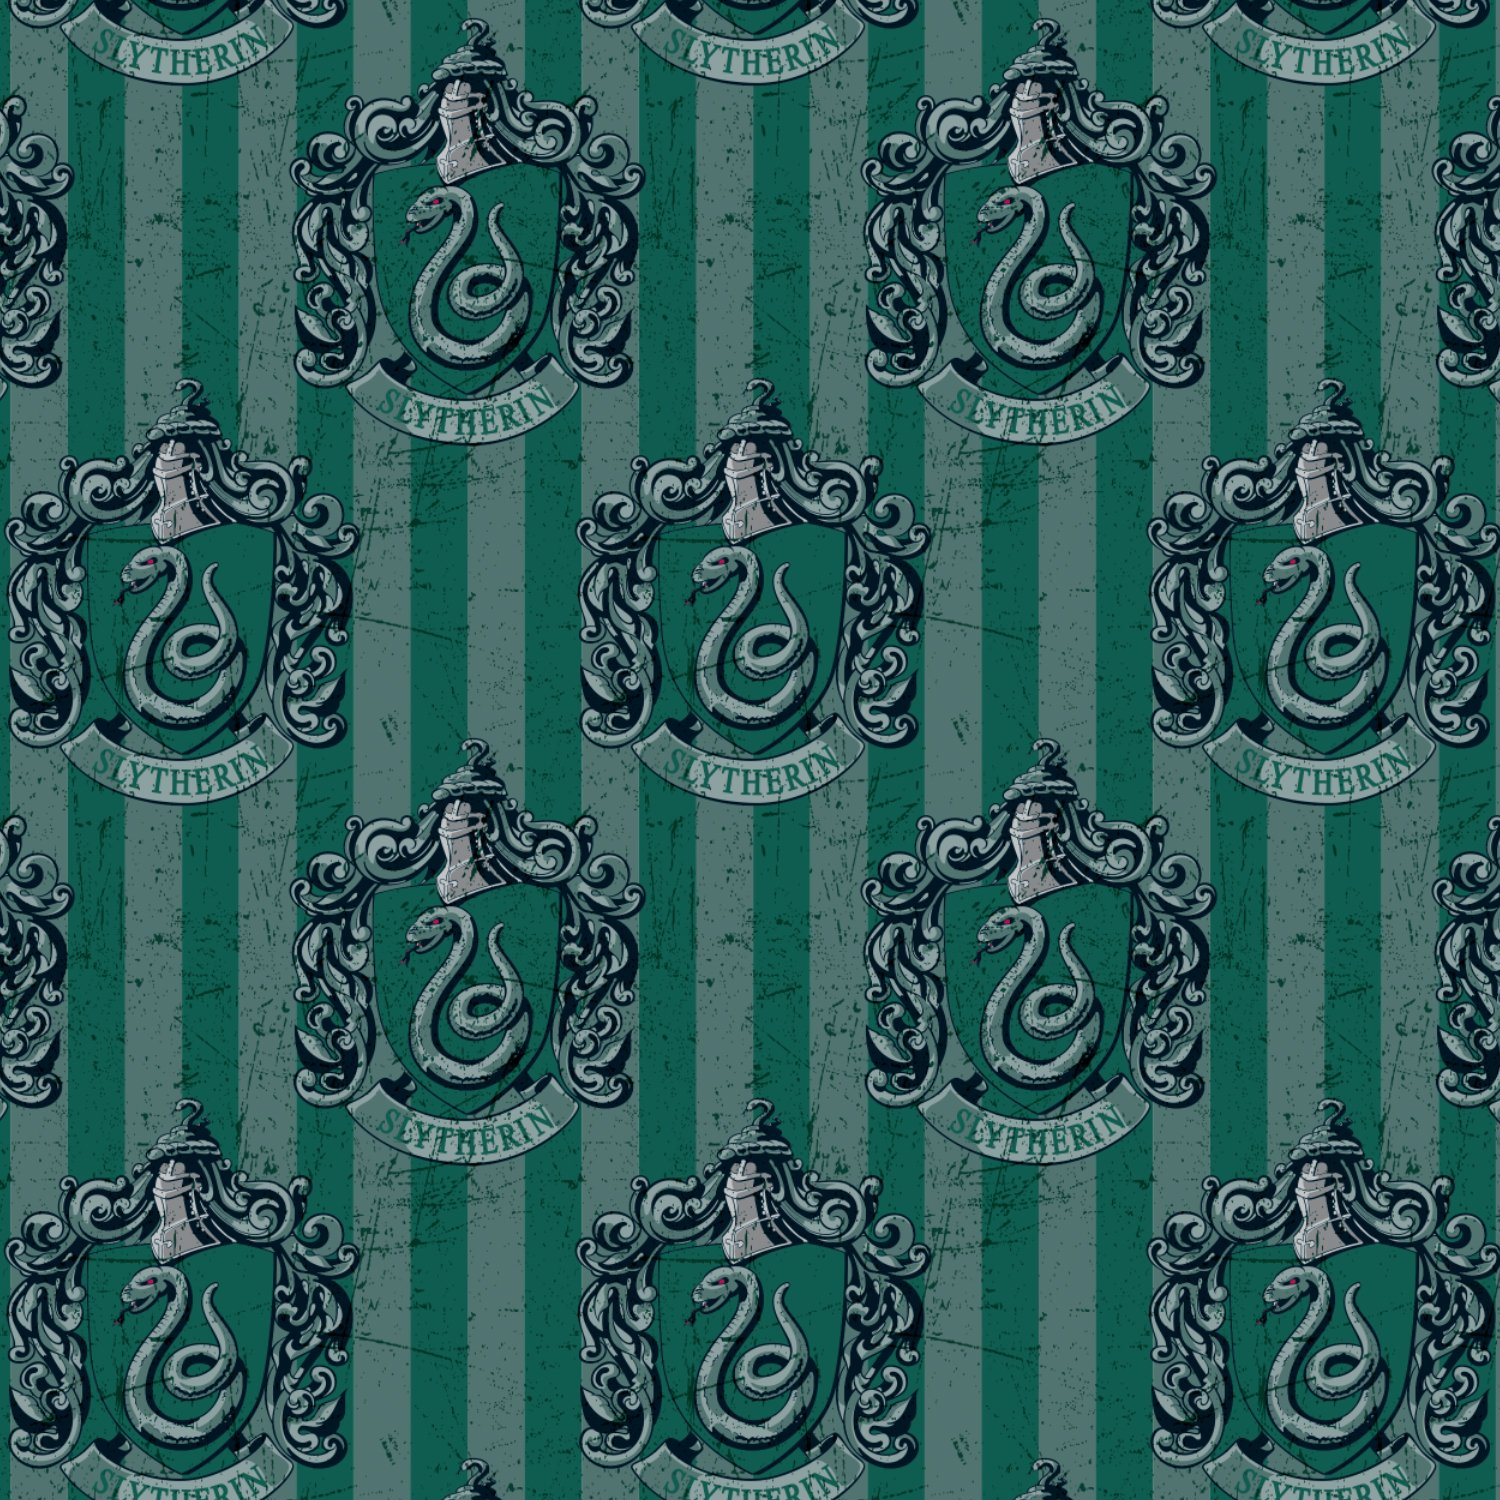 2380113j_1 Slytherin in Multi Harry Potter Refresh